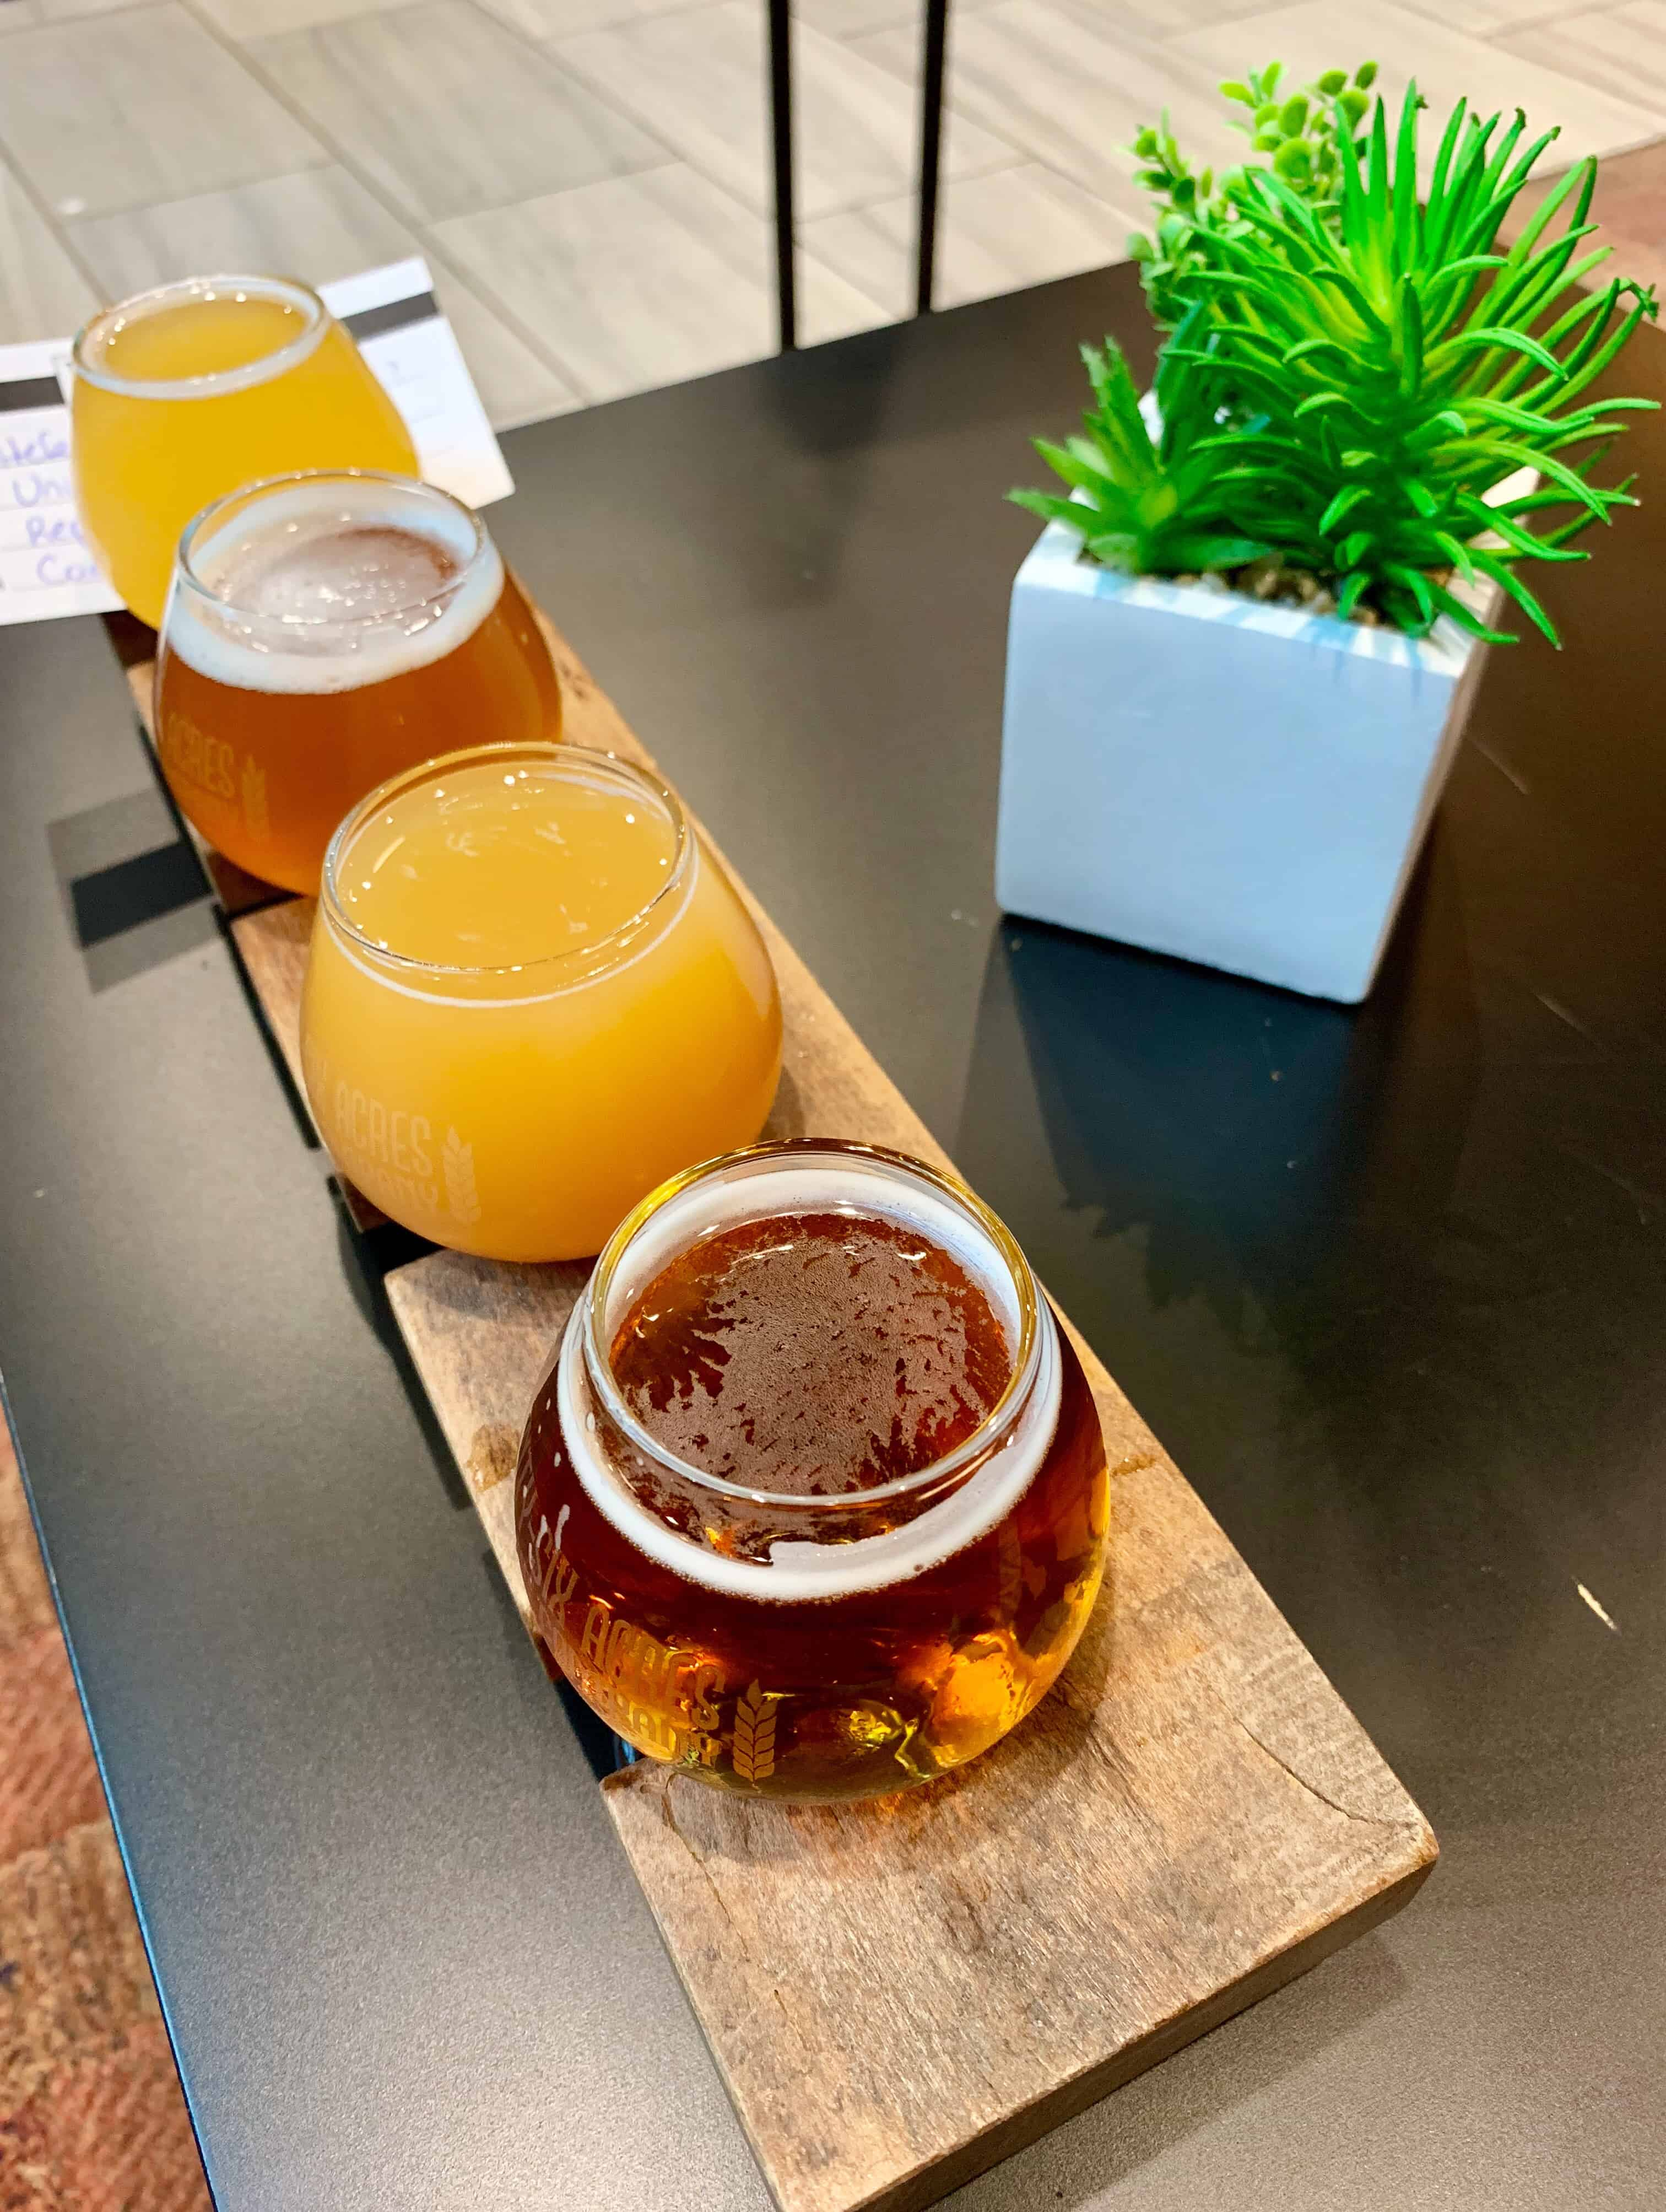 flight of 4 beers - Twenty-Six Acres Brewing, Concord, NC